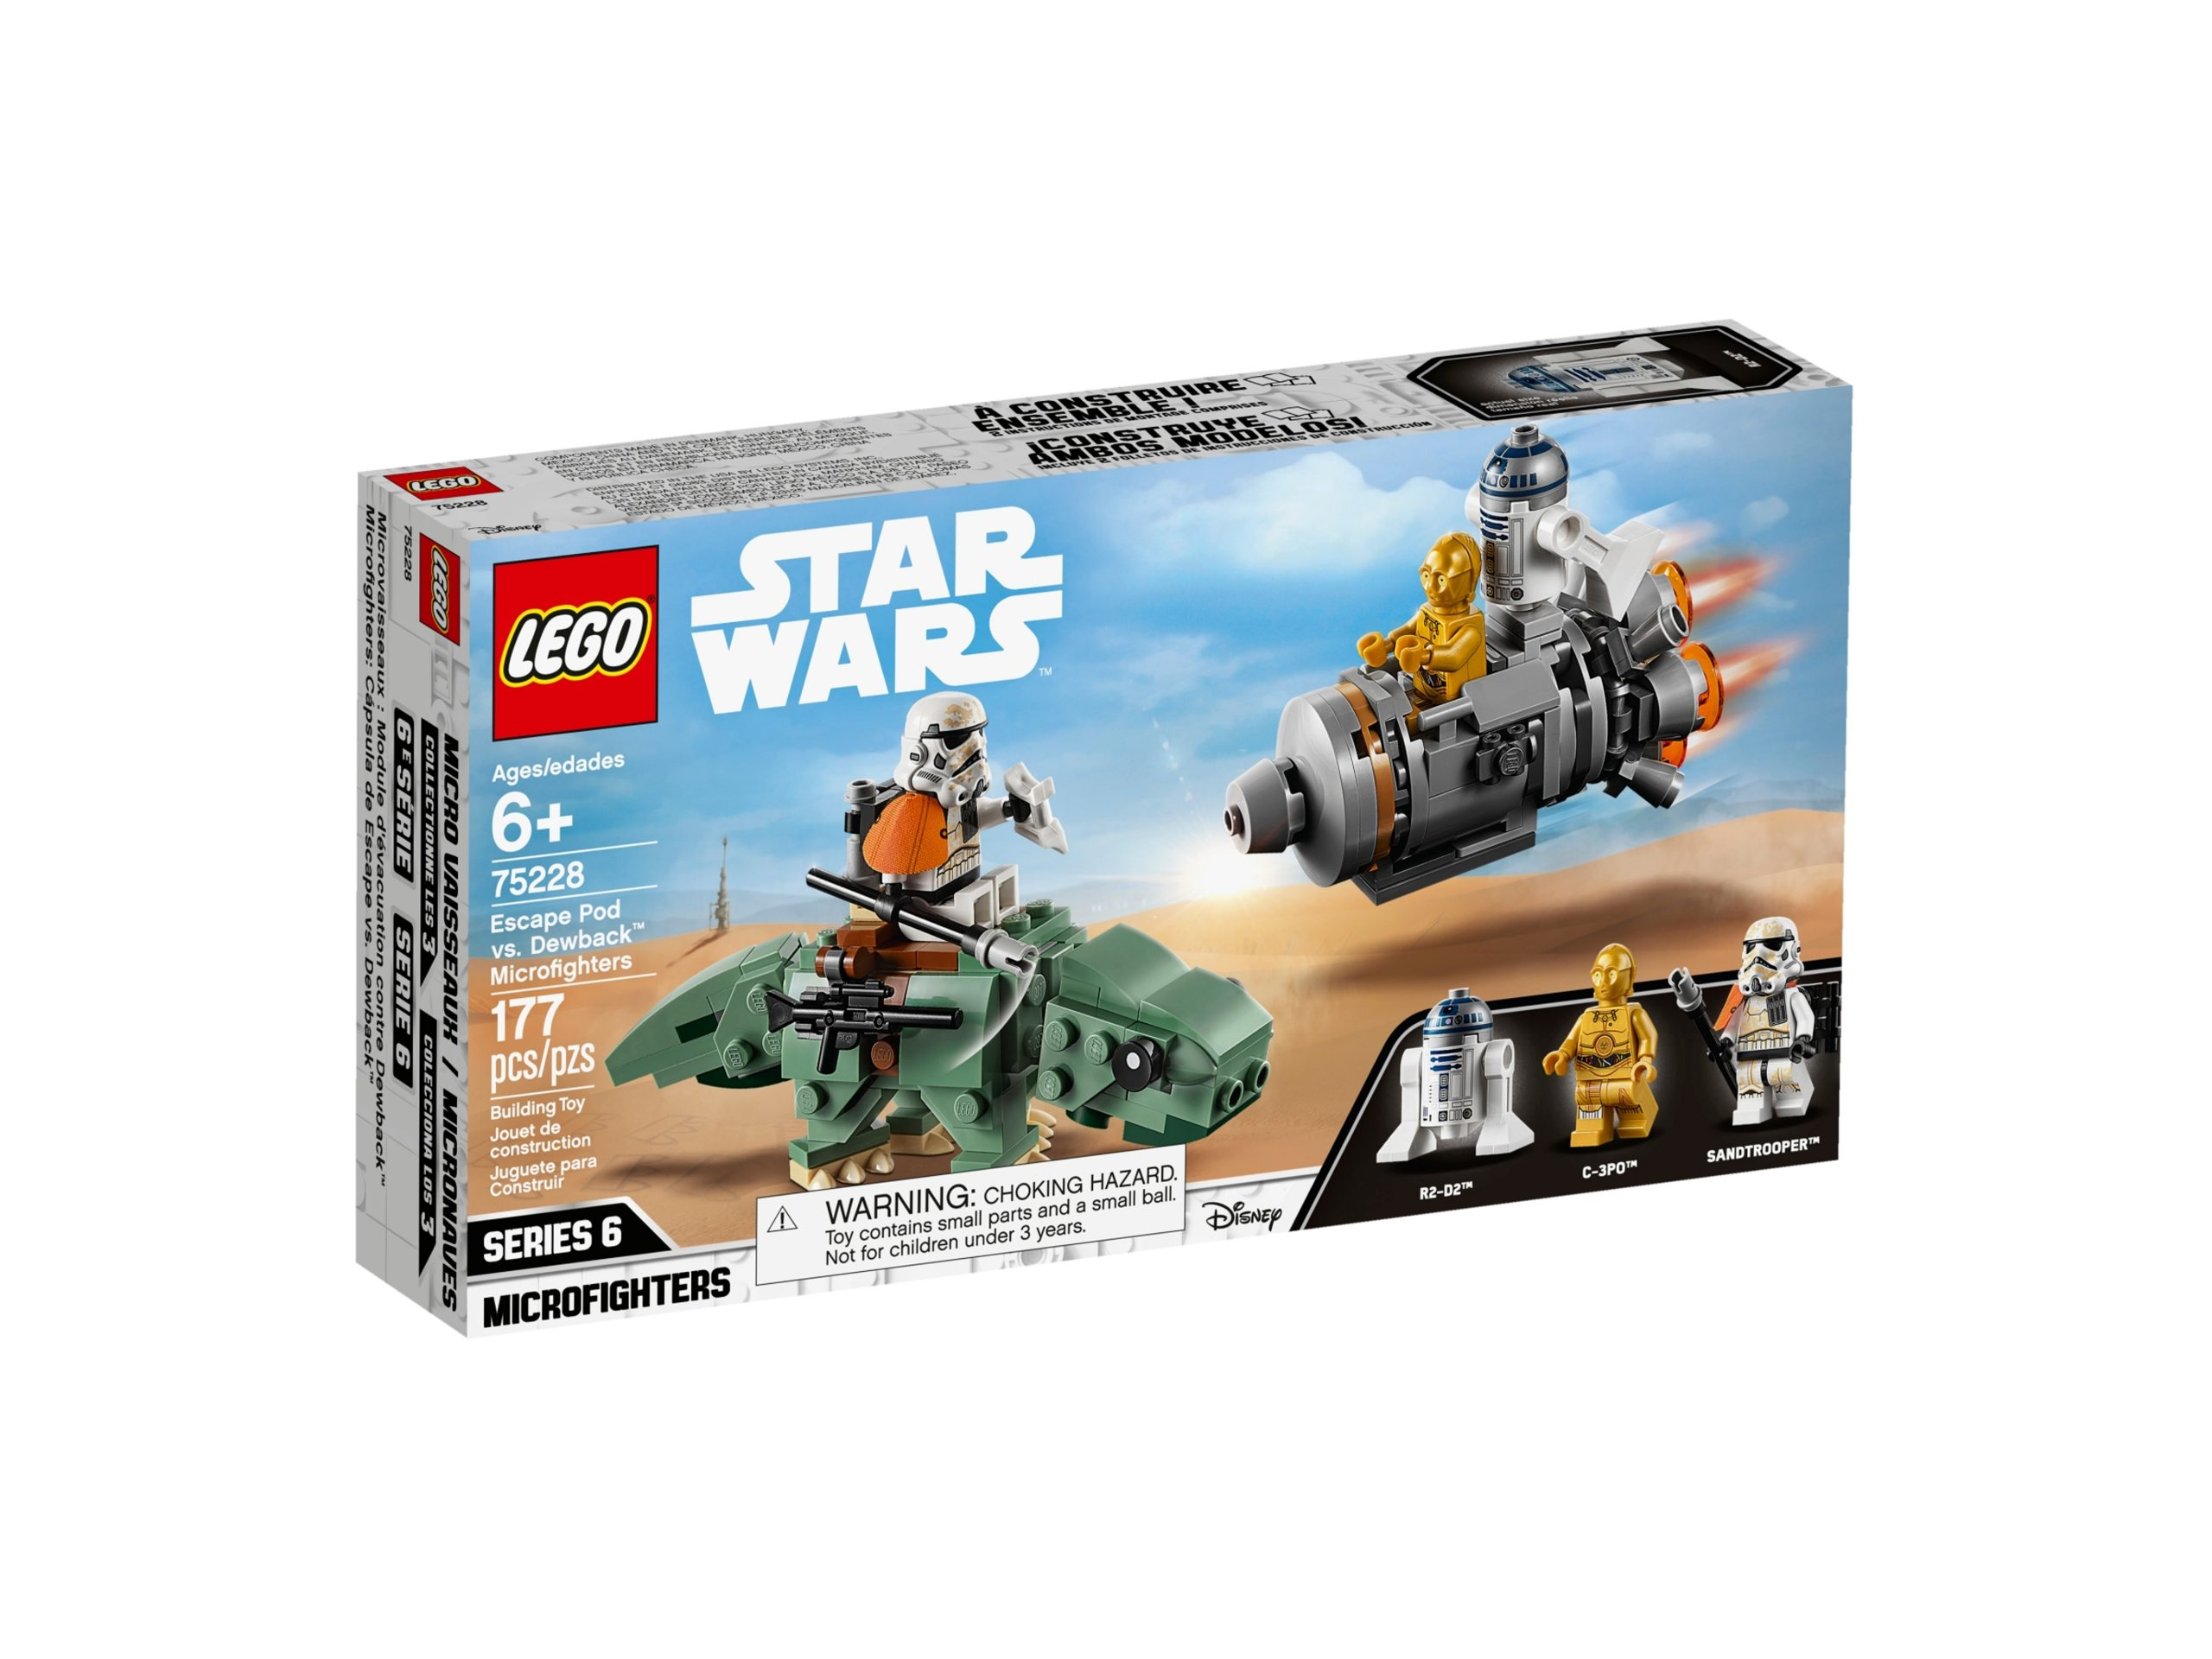 lego 75228 escape pod vs dewback microfighters scaled